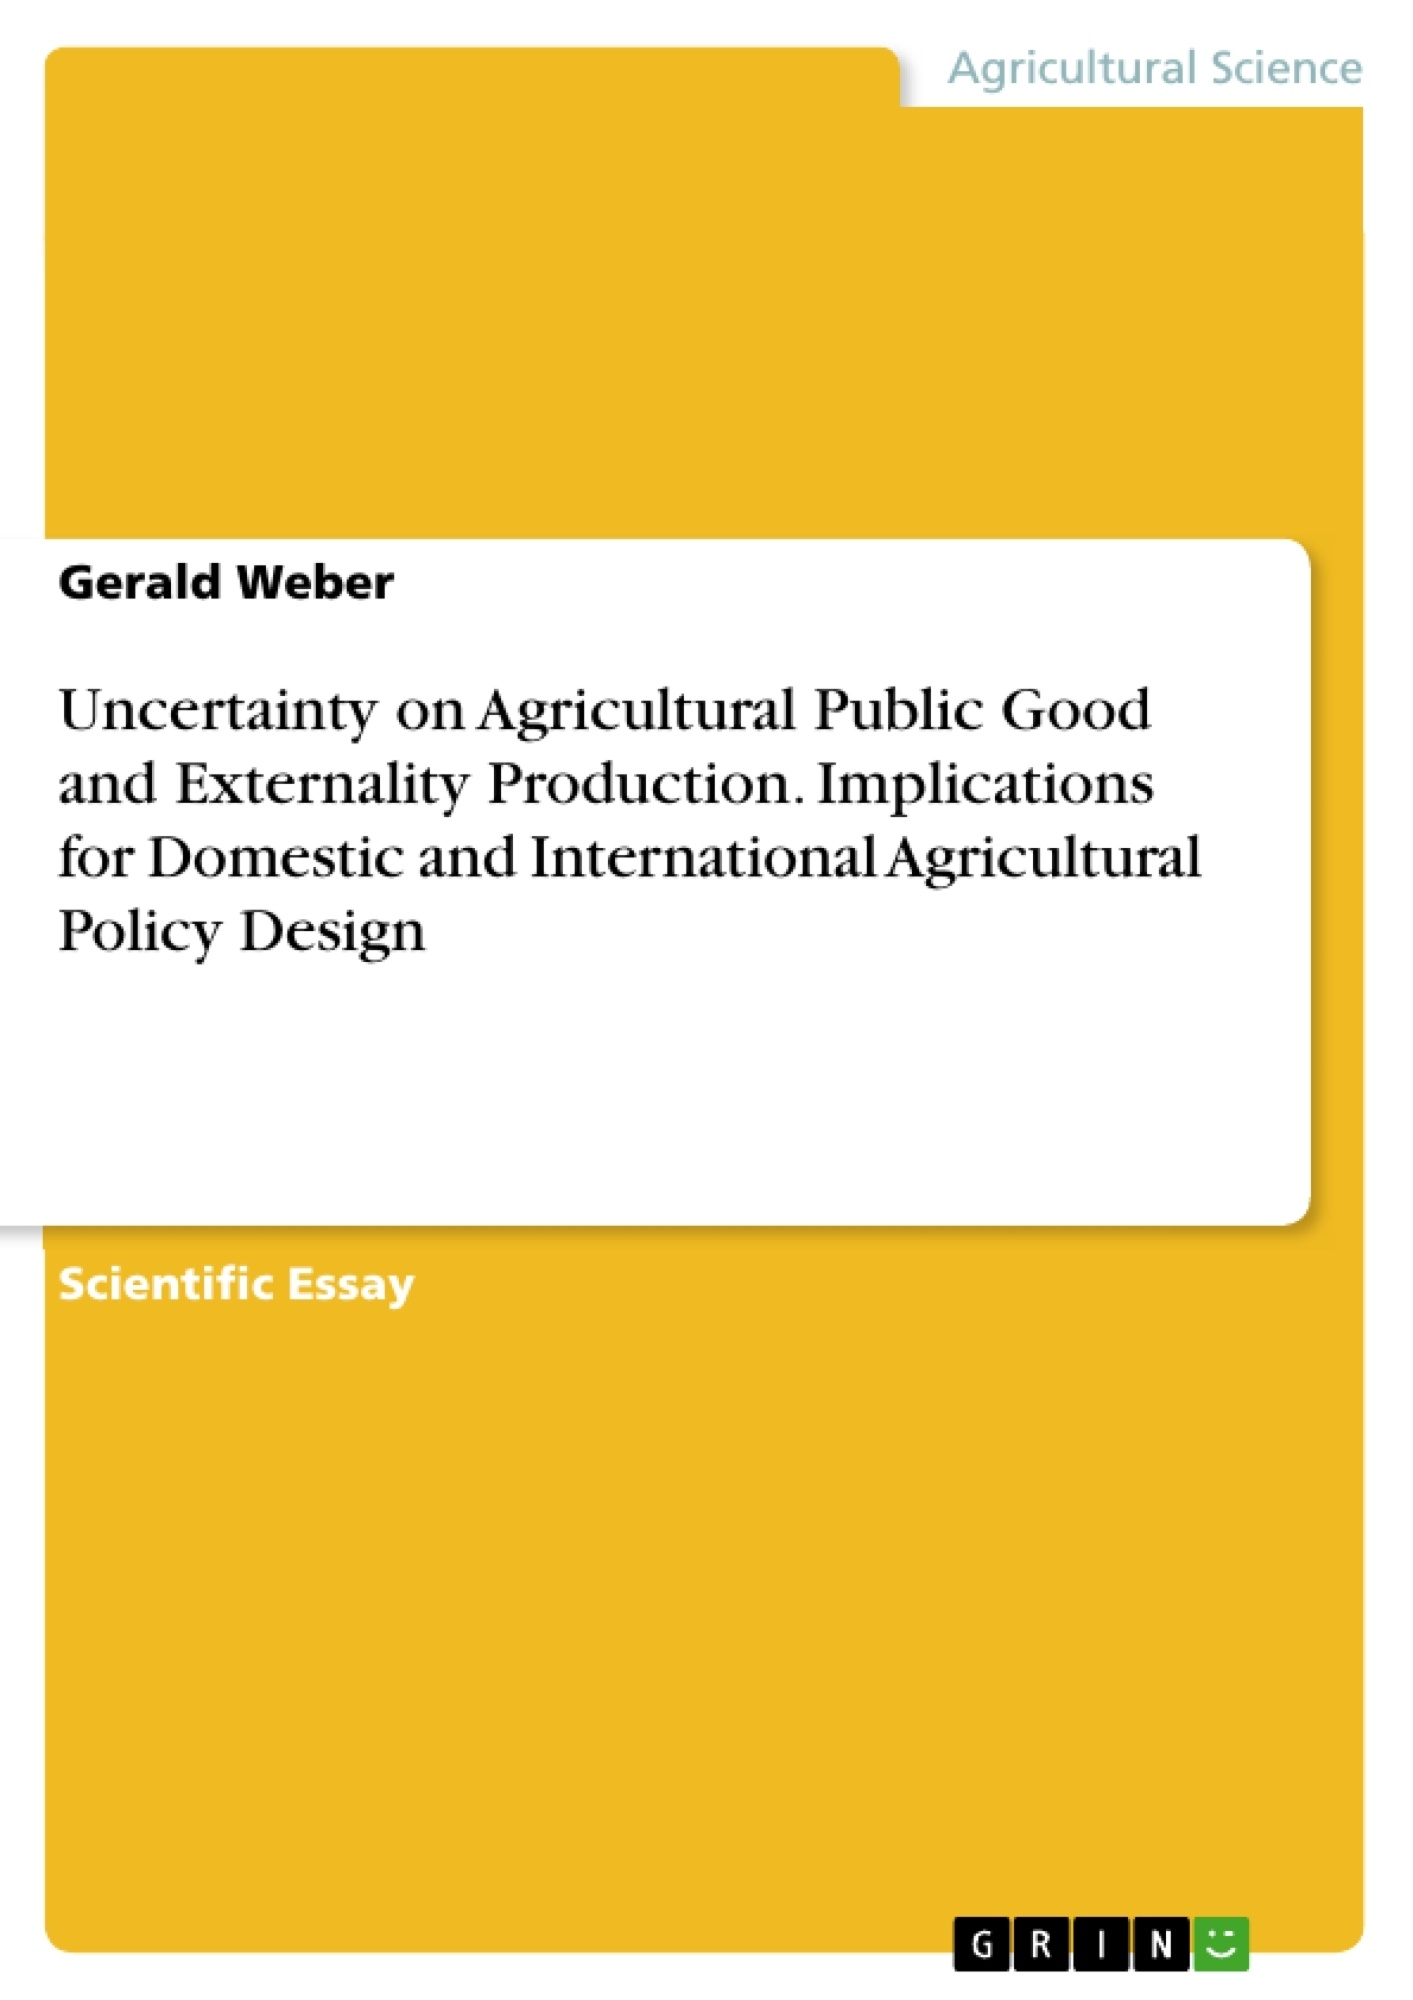 Title: Uncertainty on Agricultural Public Good and Externality Production. Implications for Domestic and International Agricultural Policy Design